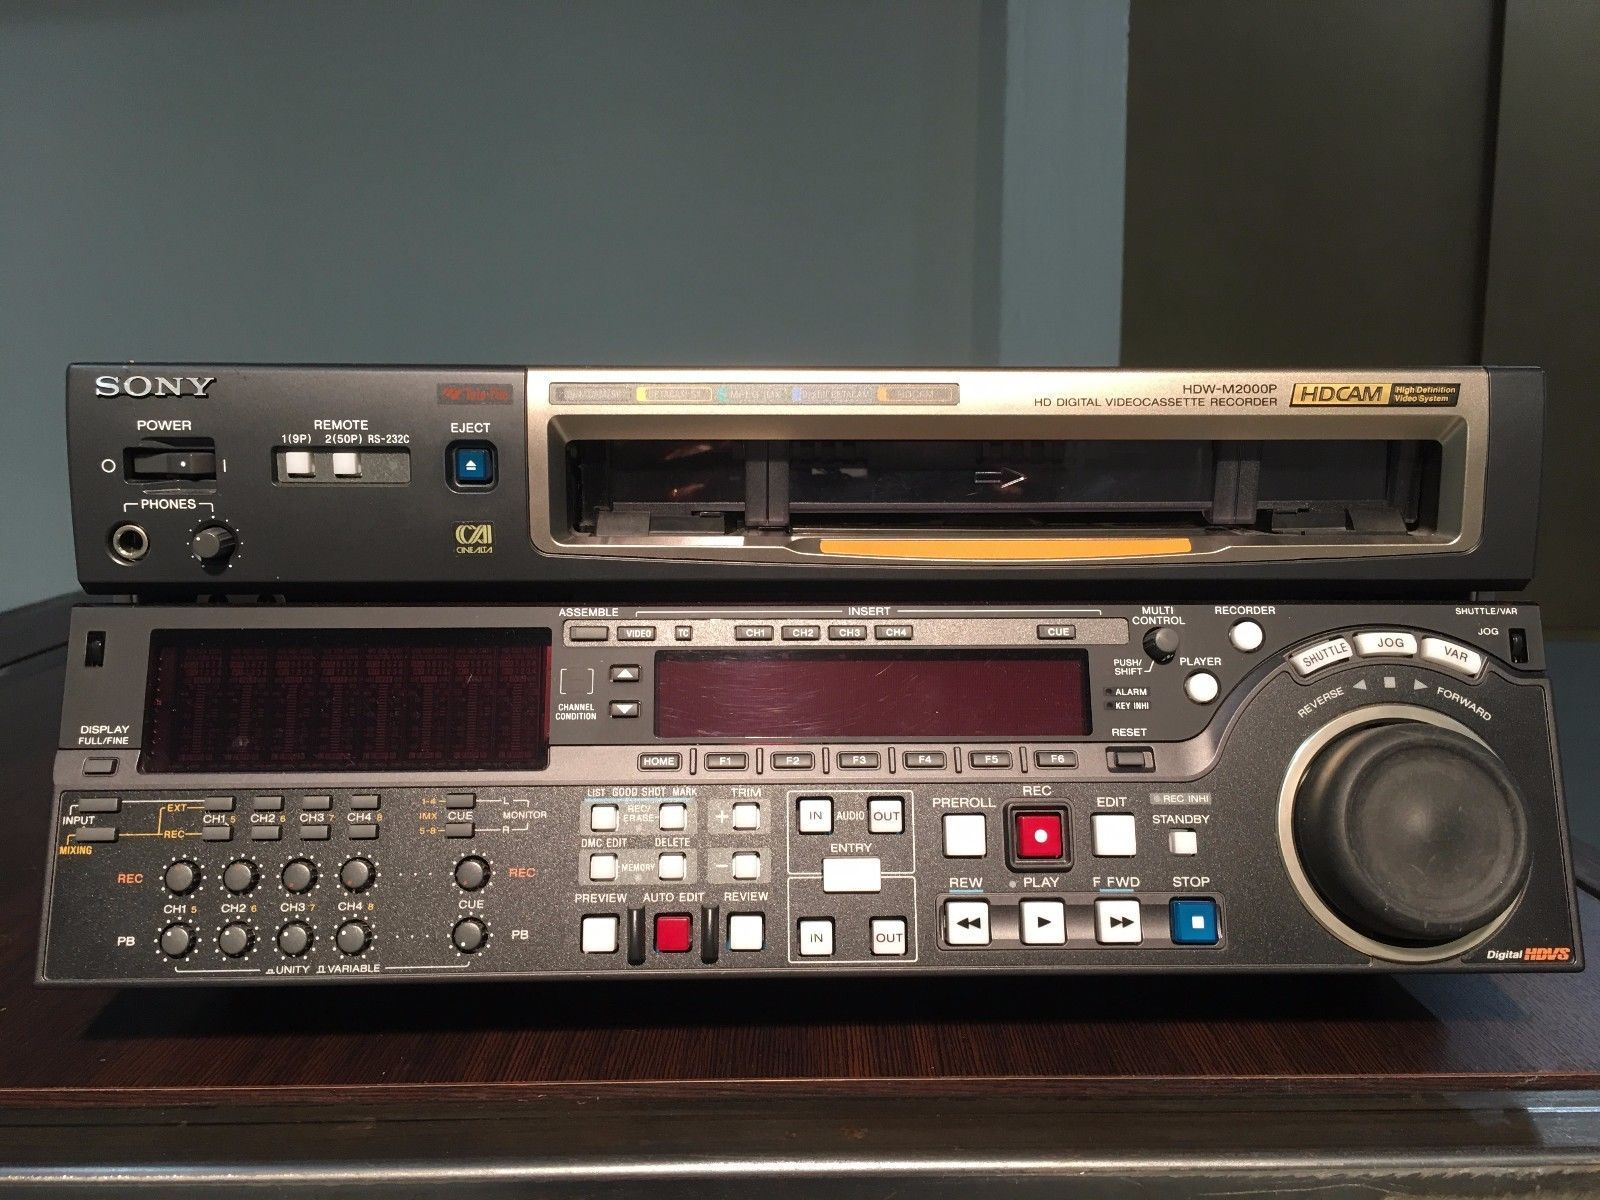 Sony HD Digital Videocassette Recorder HDW M2000P